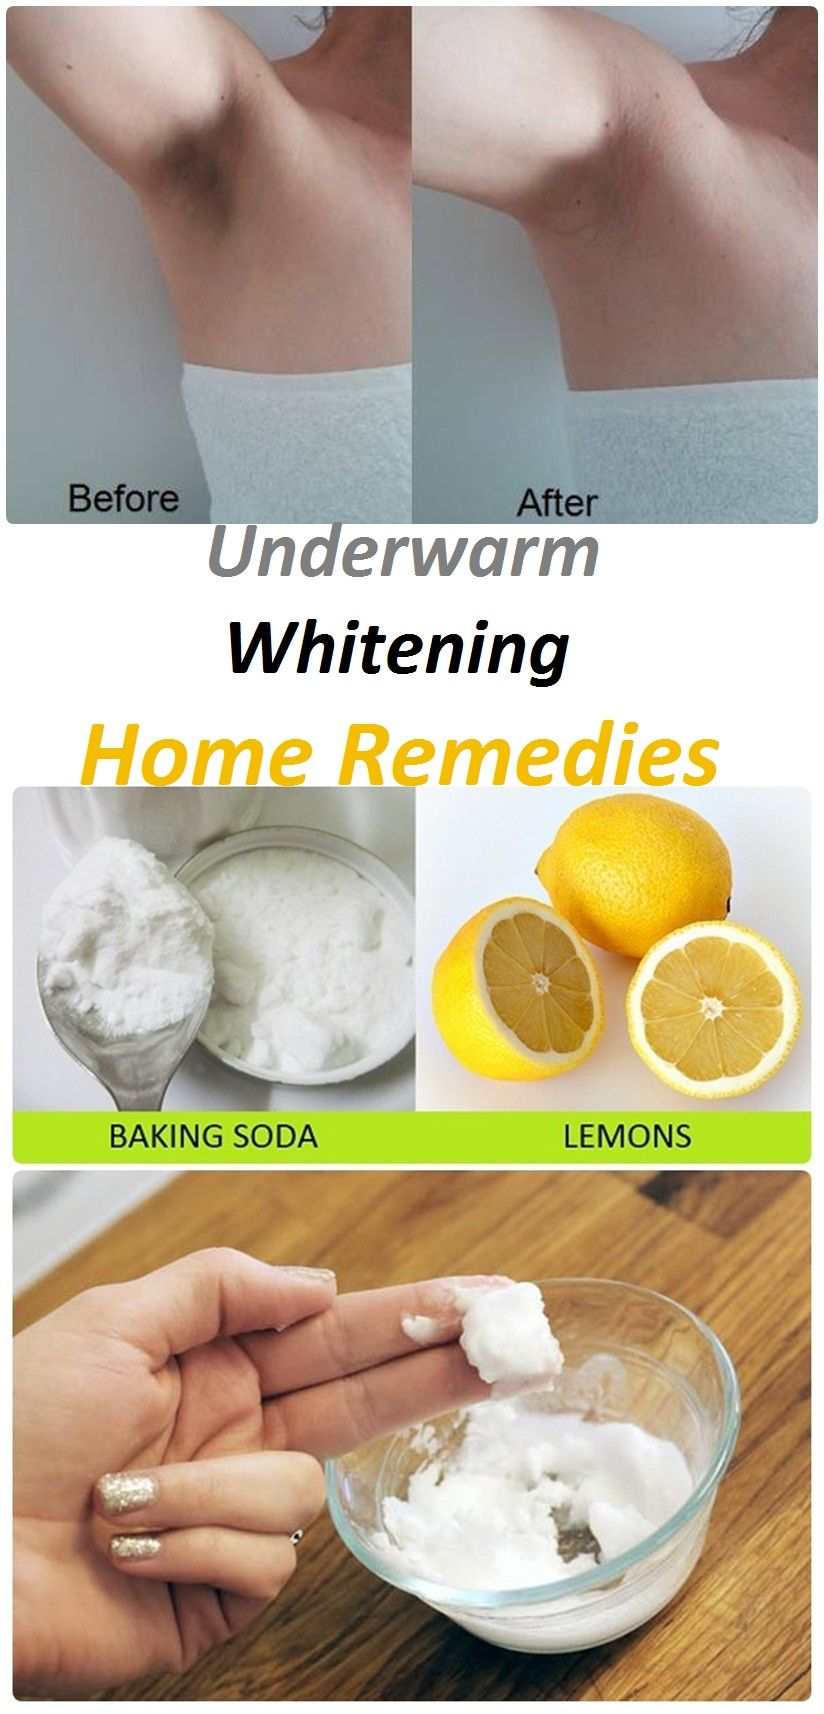 5b91791ed6a7f2ab8a4e4d67e46537cd - How To Get Rid Of Dark Underarms During Pregnancy